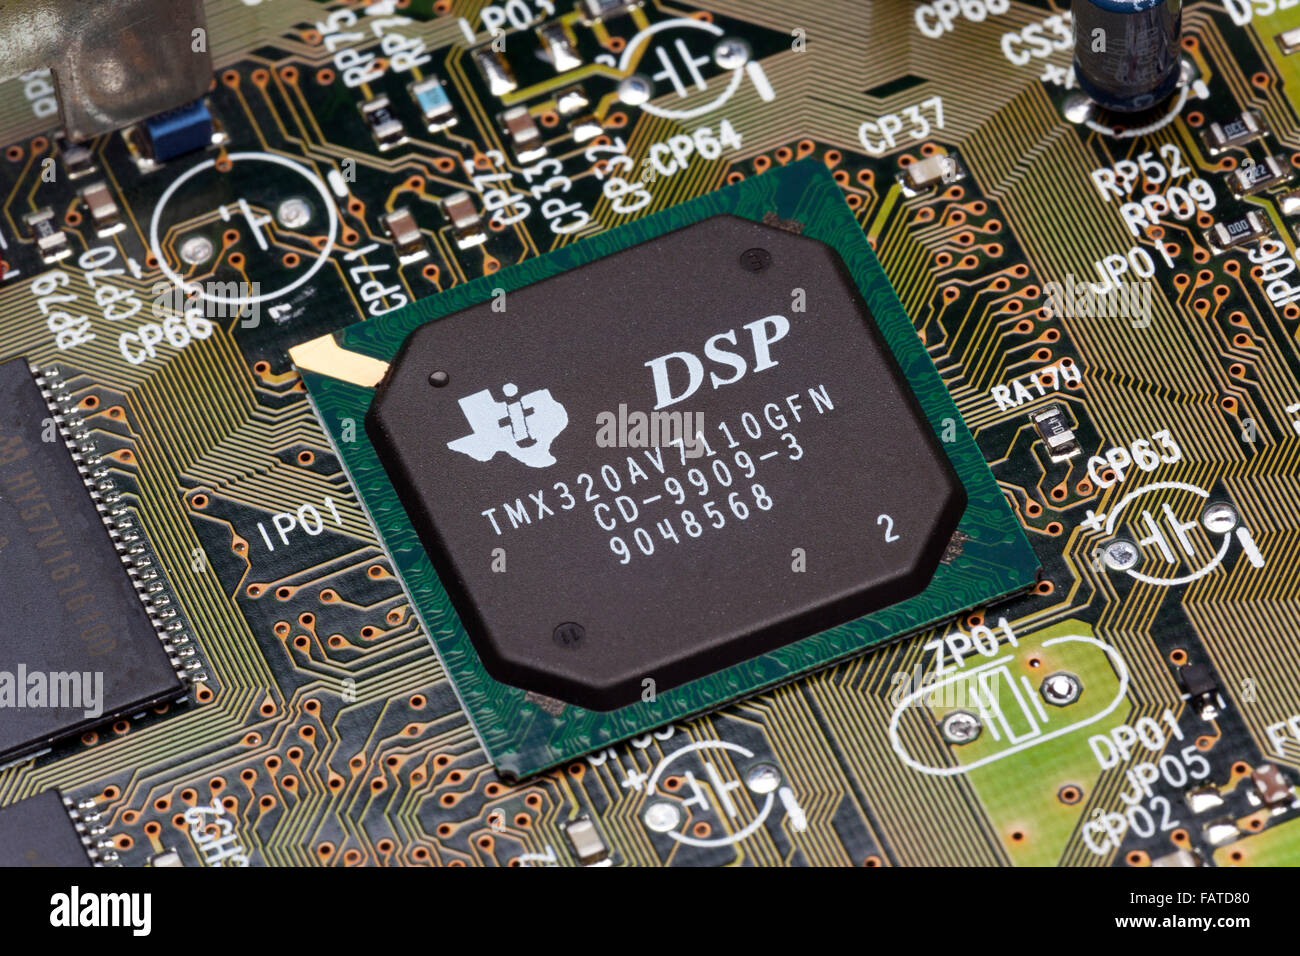 Texas Instruments digital signal processing chip Stock Photo